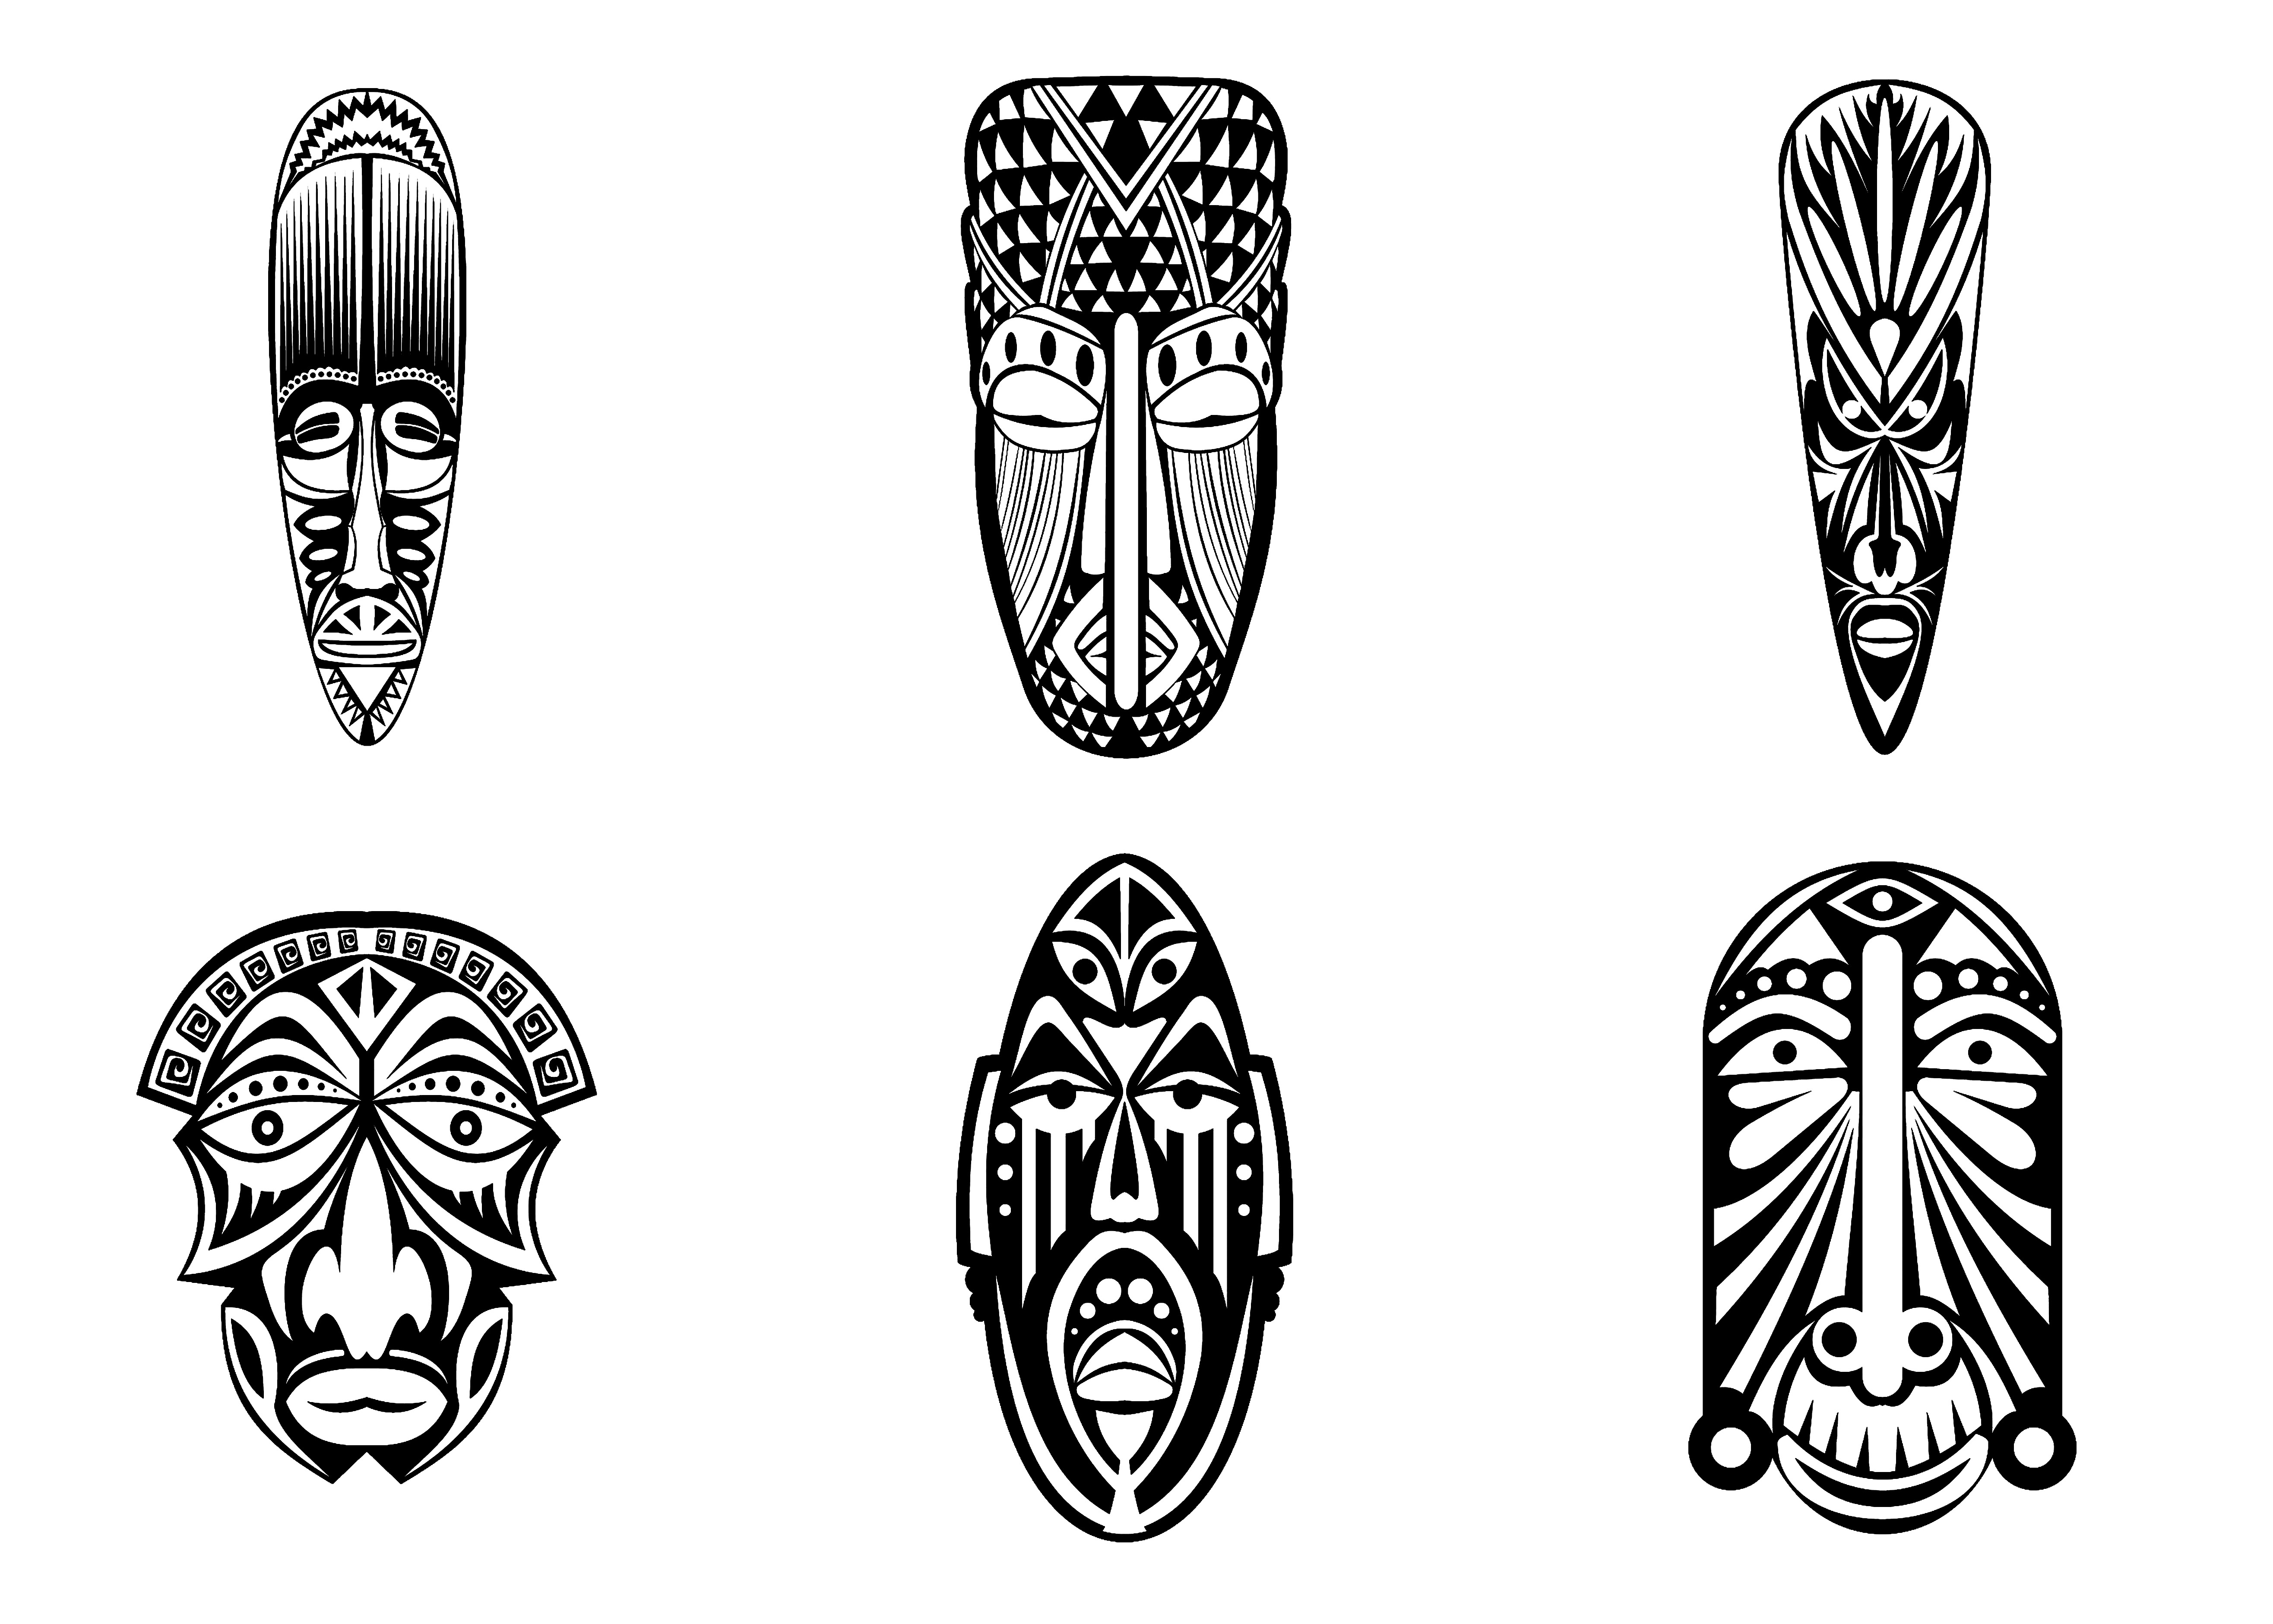 6 African Masks Simples - Africa Adult Coloring Pages destiné Dessin Masque Africain